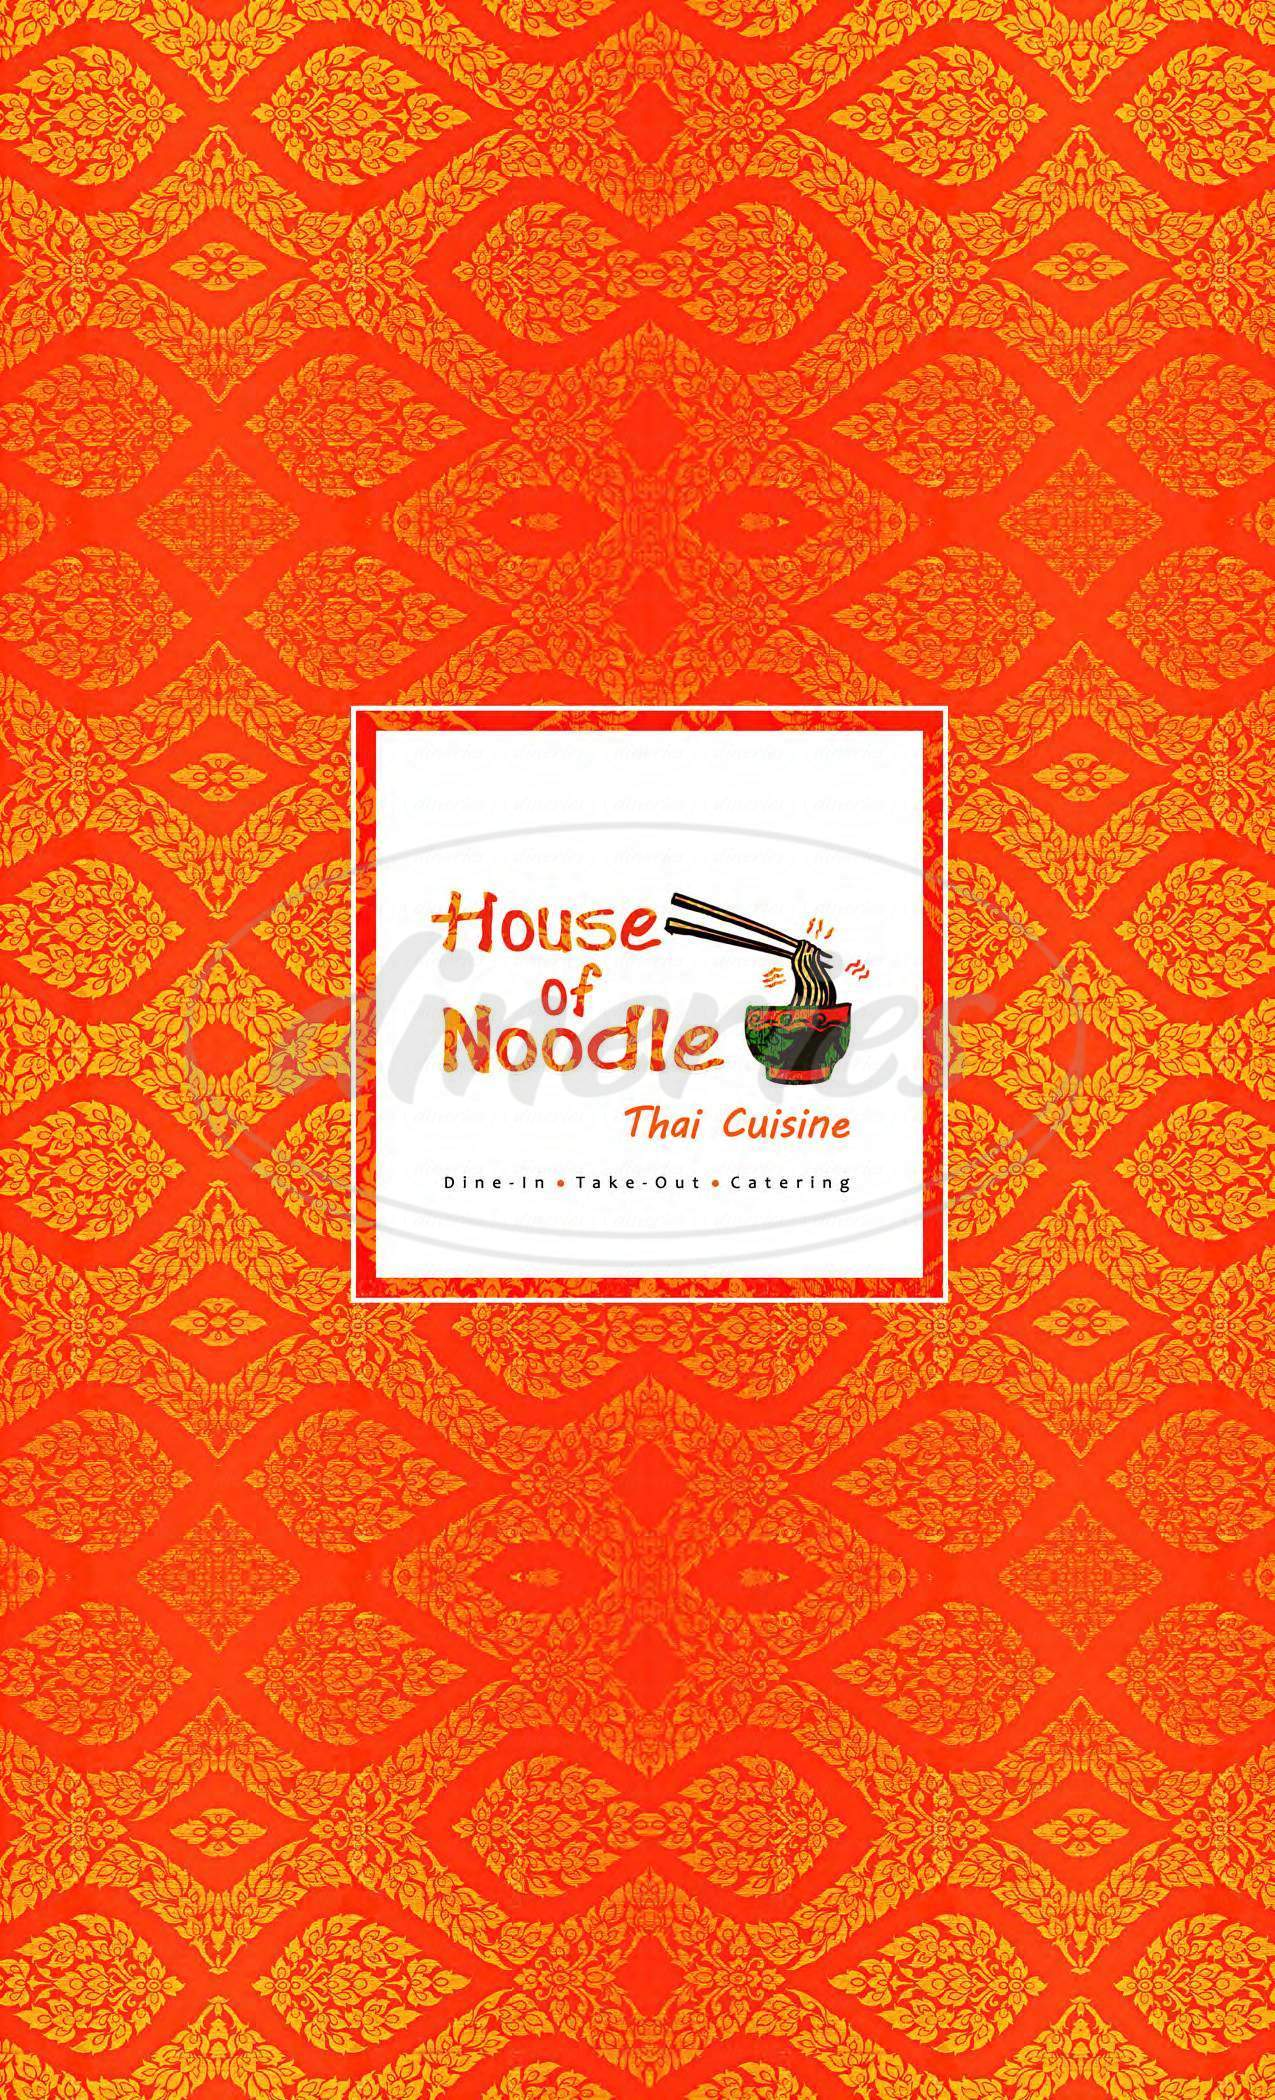 menu for House of Noodle